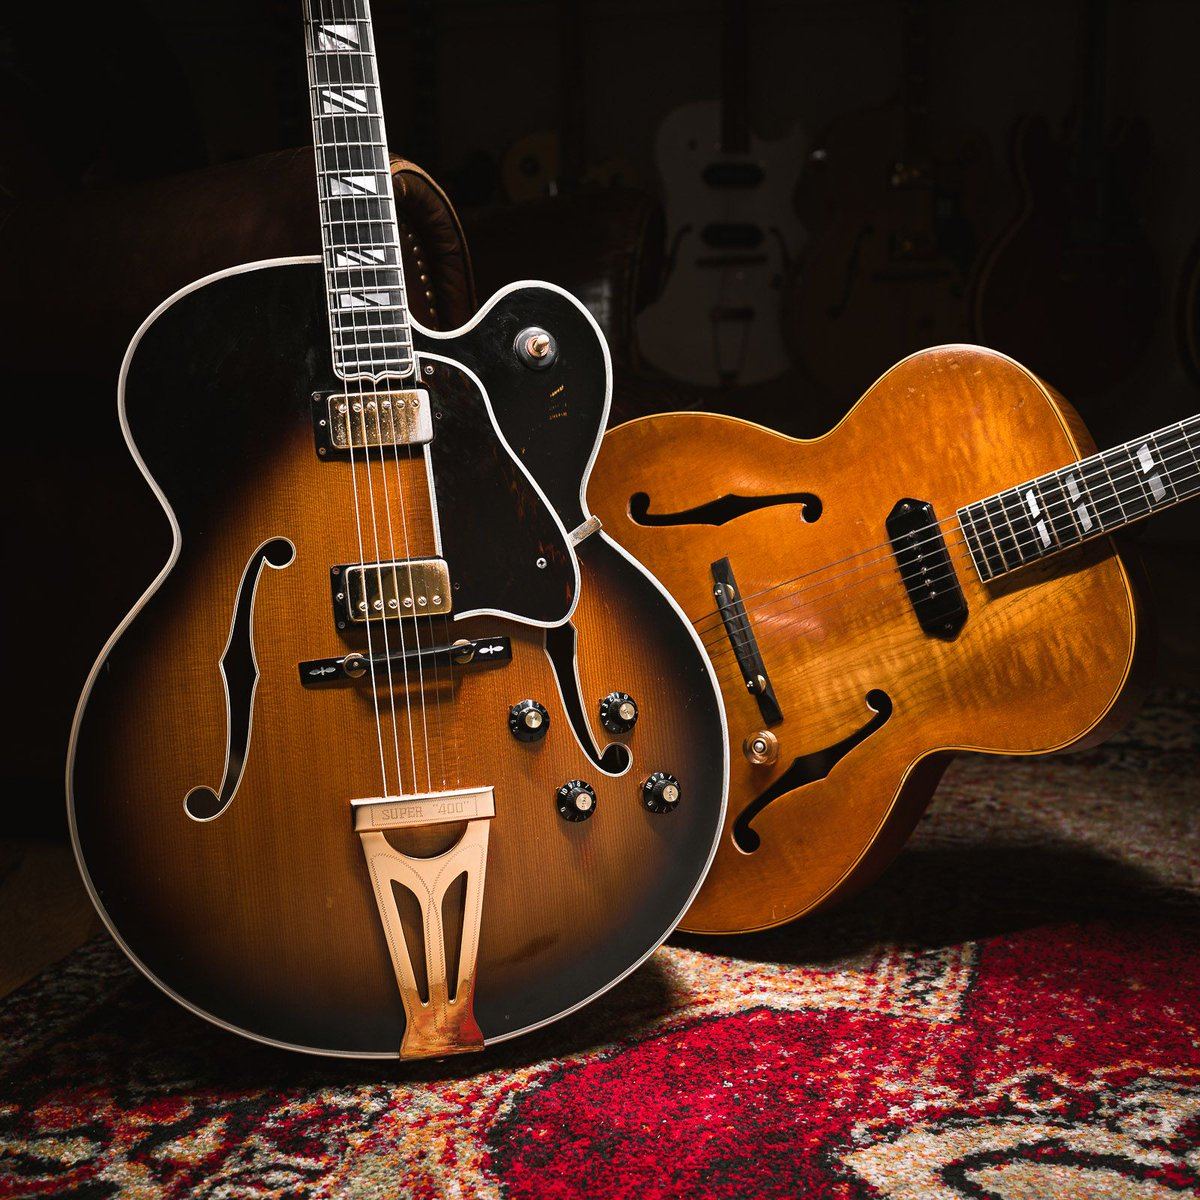 A couple birds of a feather. http://bit.ly/3c1zVuS #gibson #sunburst #byrdland #1967 #gearwire #gearybusey #guitarspotter #guitarphotography #guitarsdaily #tonemob #knowyourtonepic.twitter.com/JoFHchAosZ